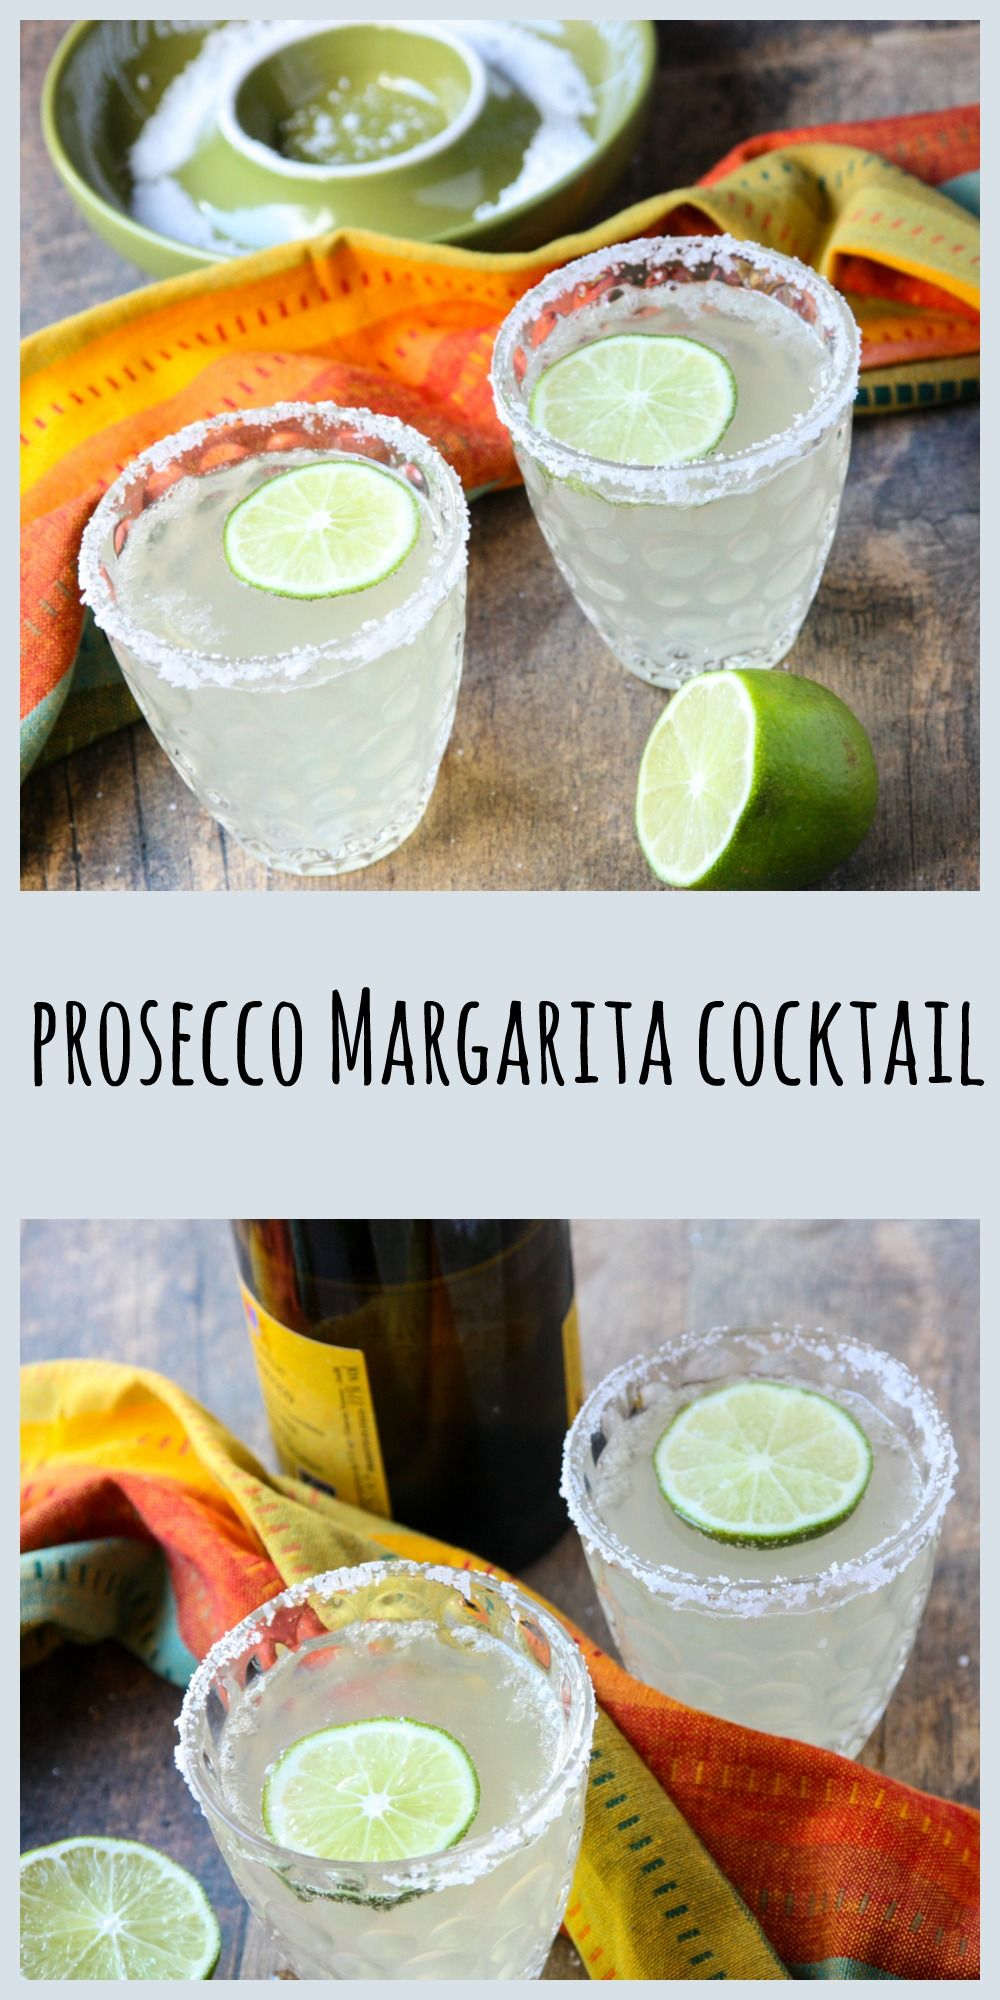 Prosecco Margarita Cocktail